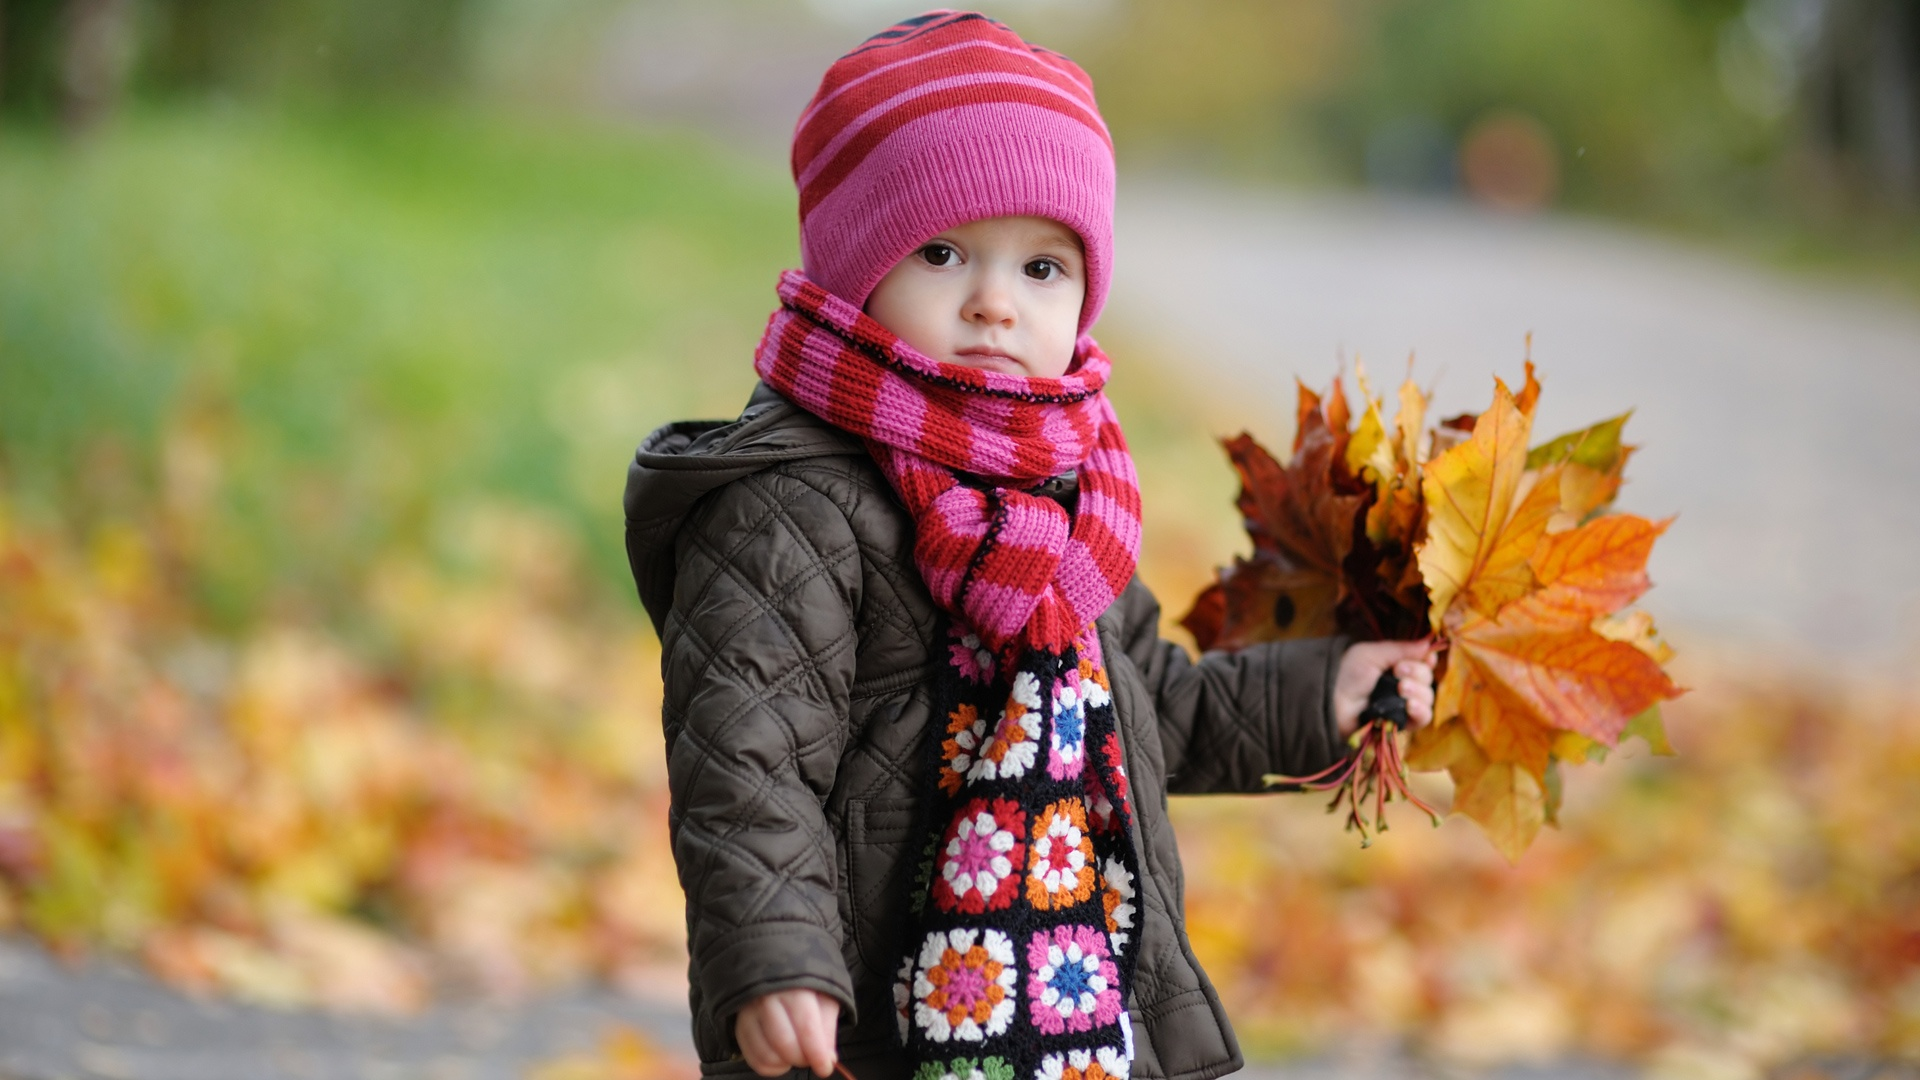 Cute-baby-in-Autumn-HD-1920x1080-Need-iPhone-S-Plus-Background-for-IPh-wallpaper-wpc5803819